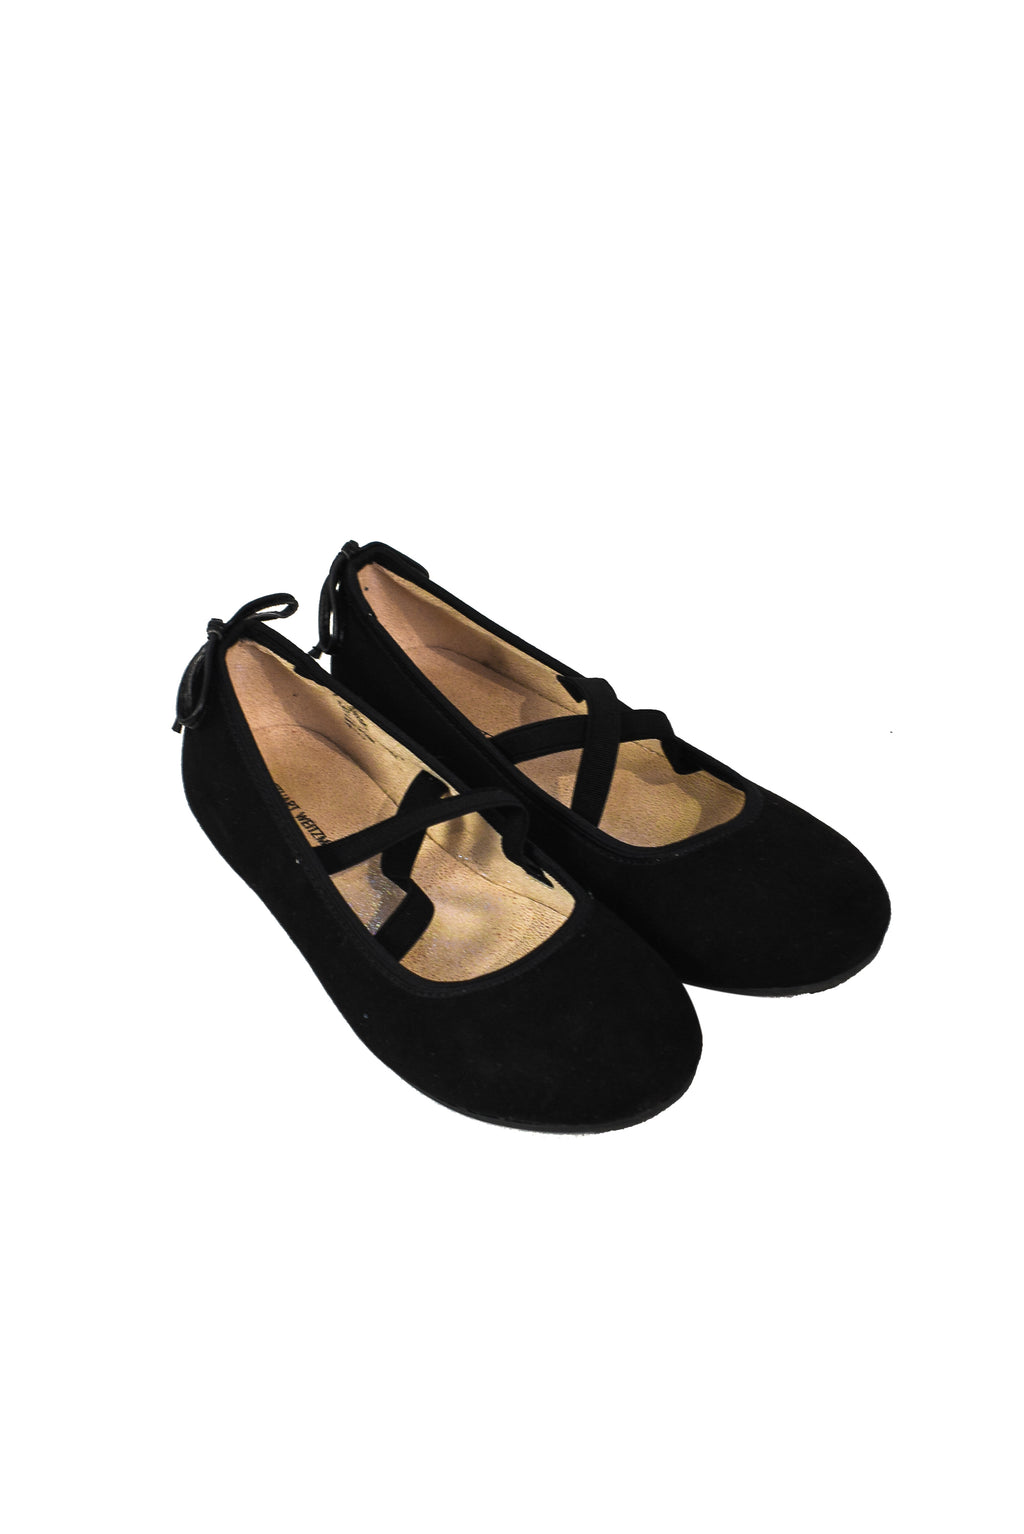 10043903 Stuart Weitzman Kids~Flats 8 (EU 33) at Retykle